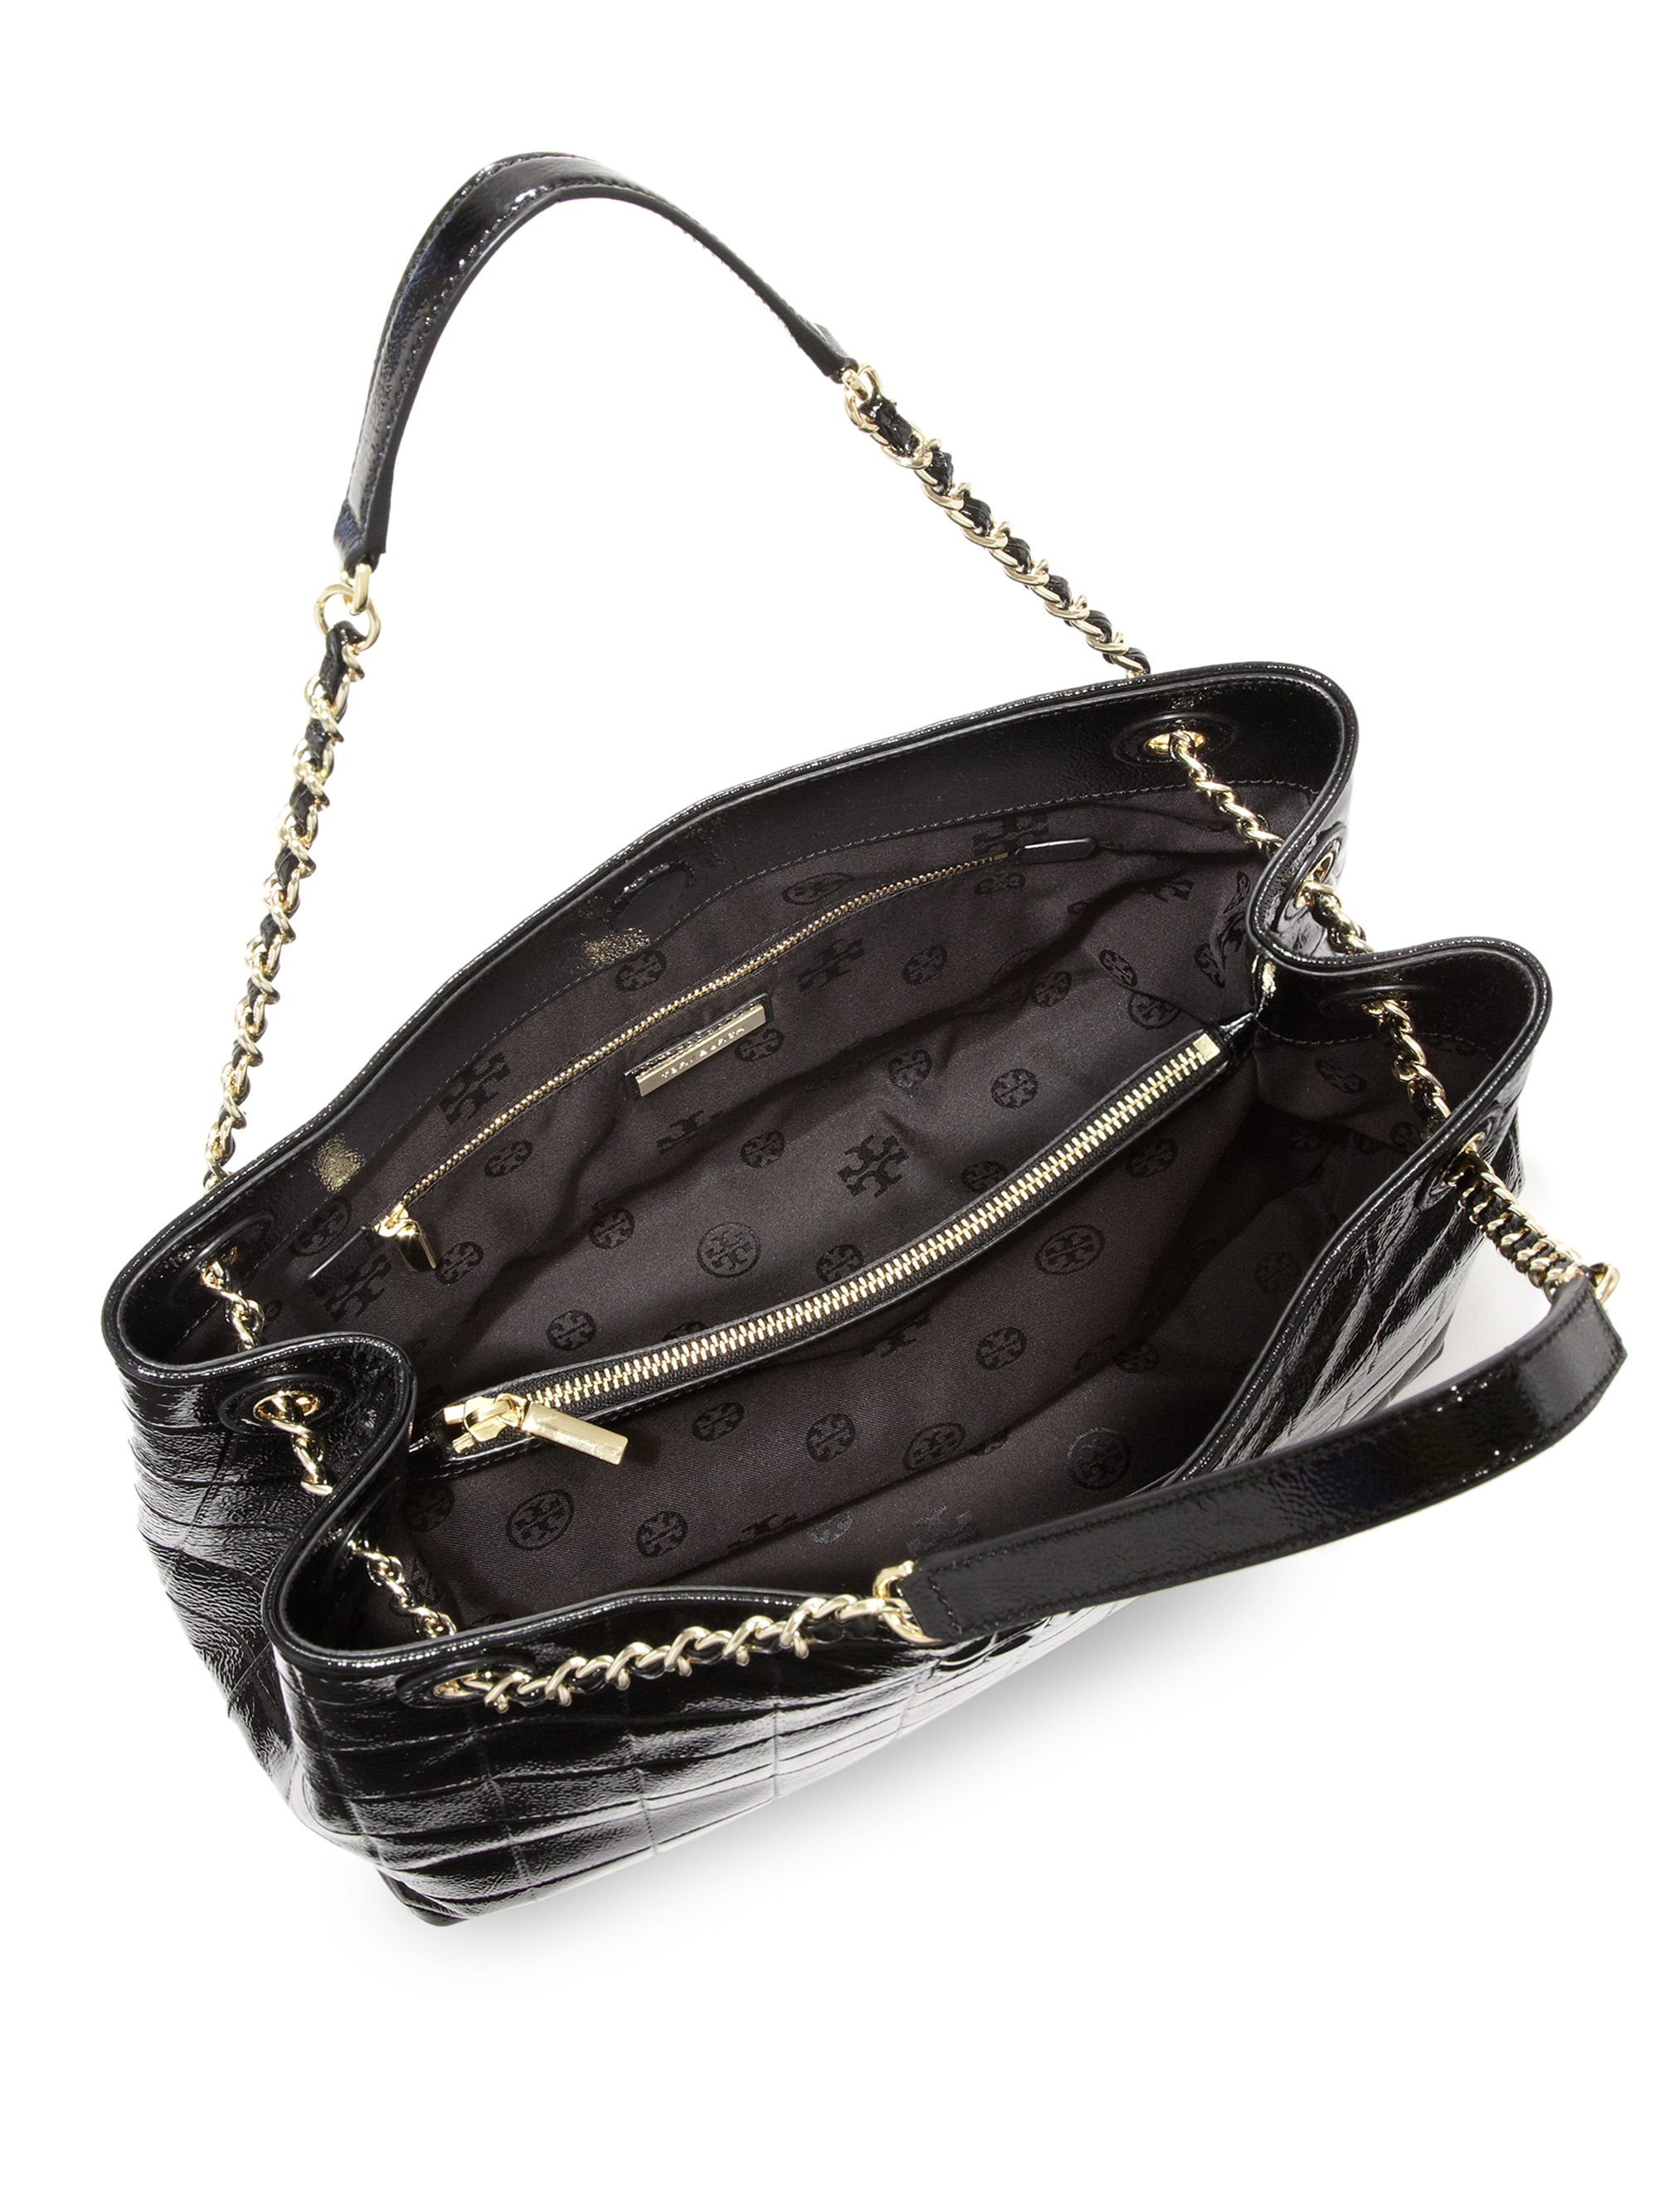 f5f1fbe62a8 Lyst - Tory Burch Marion Quilted Patent Leather Chain Shoulder Bag ...